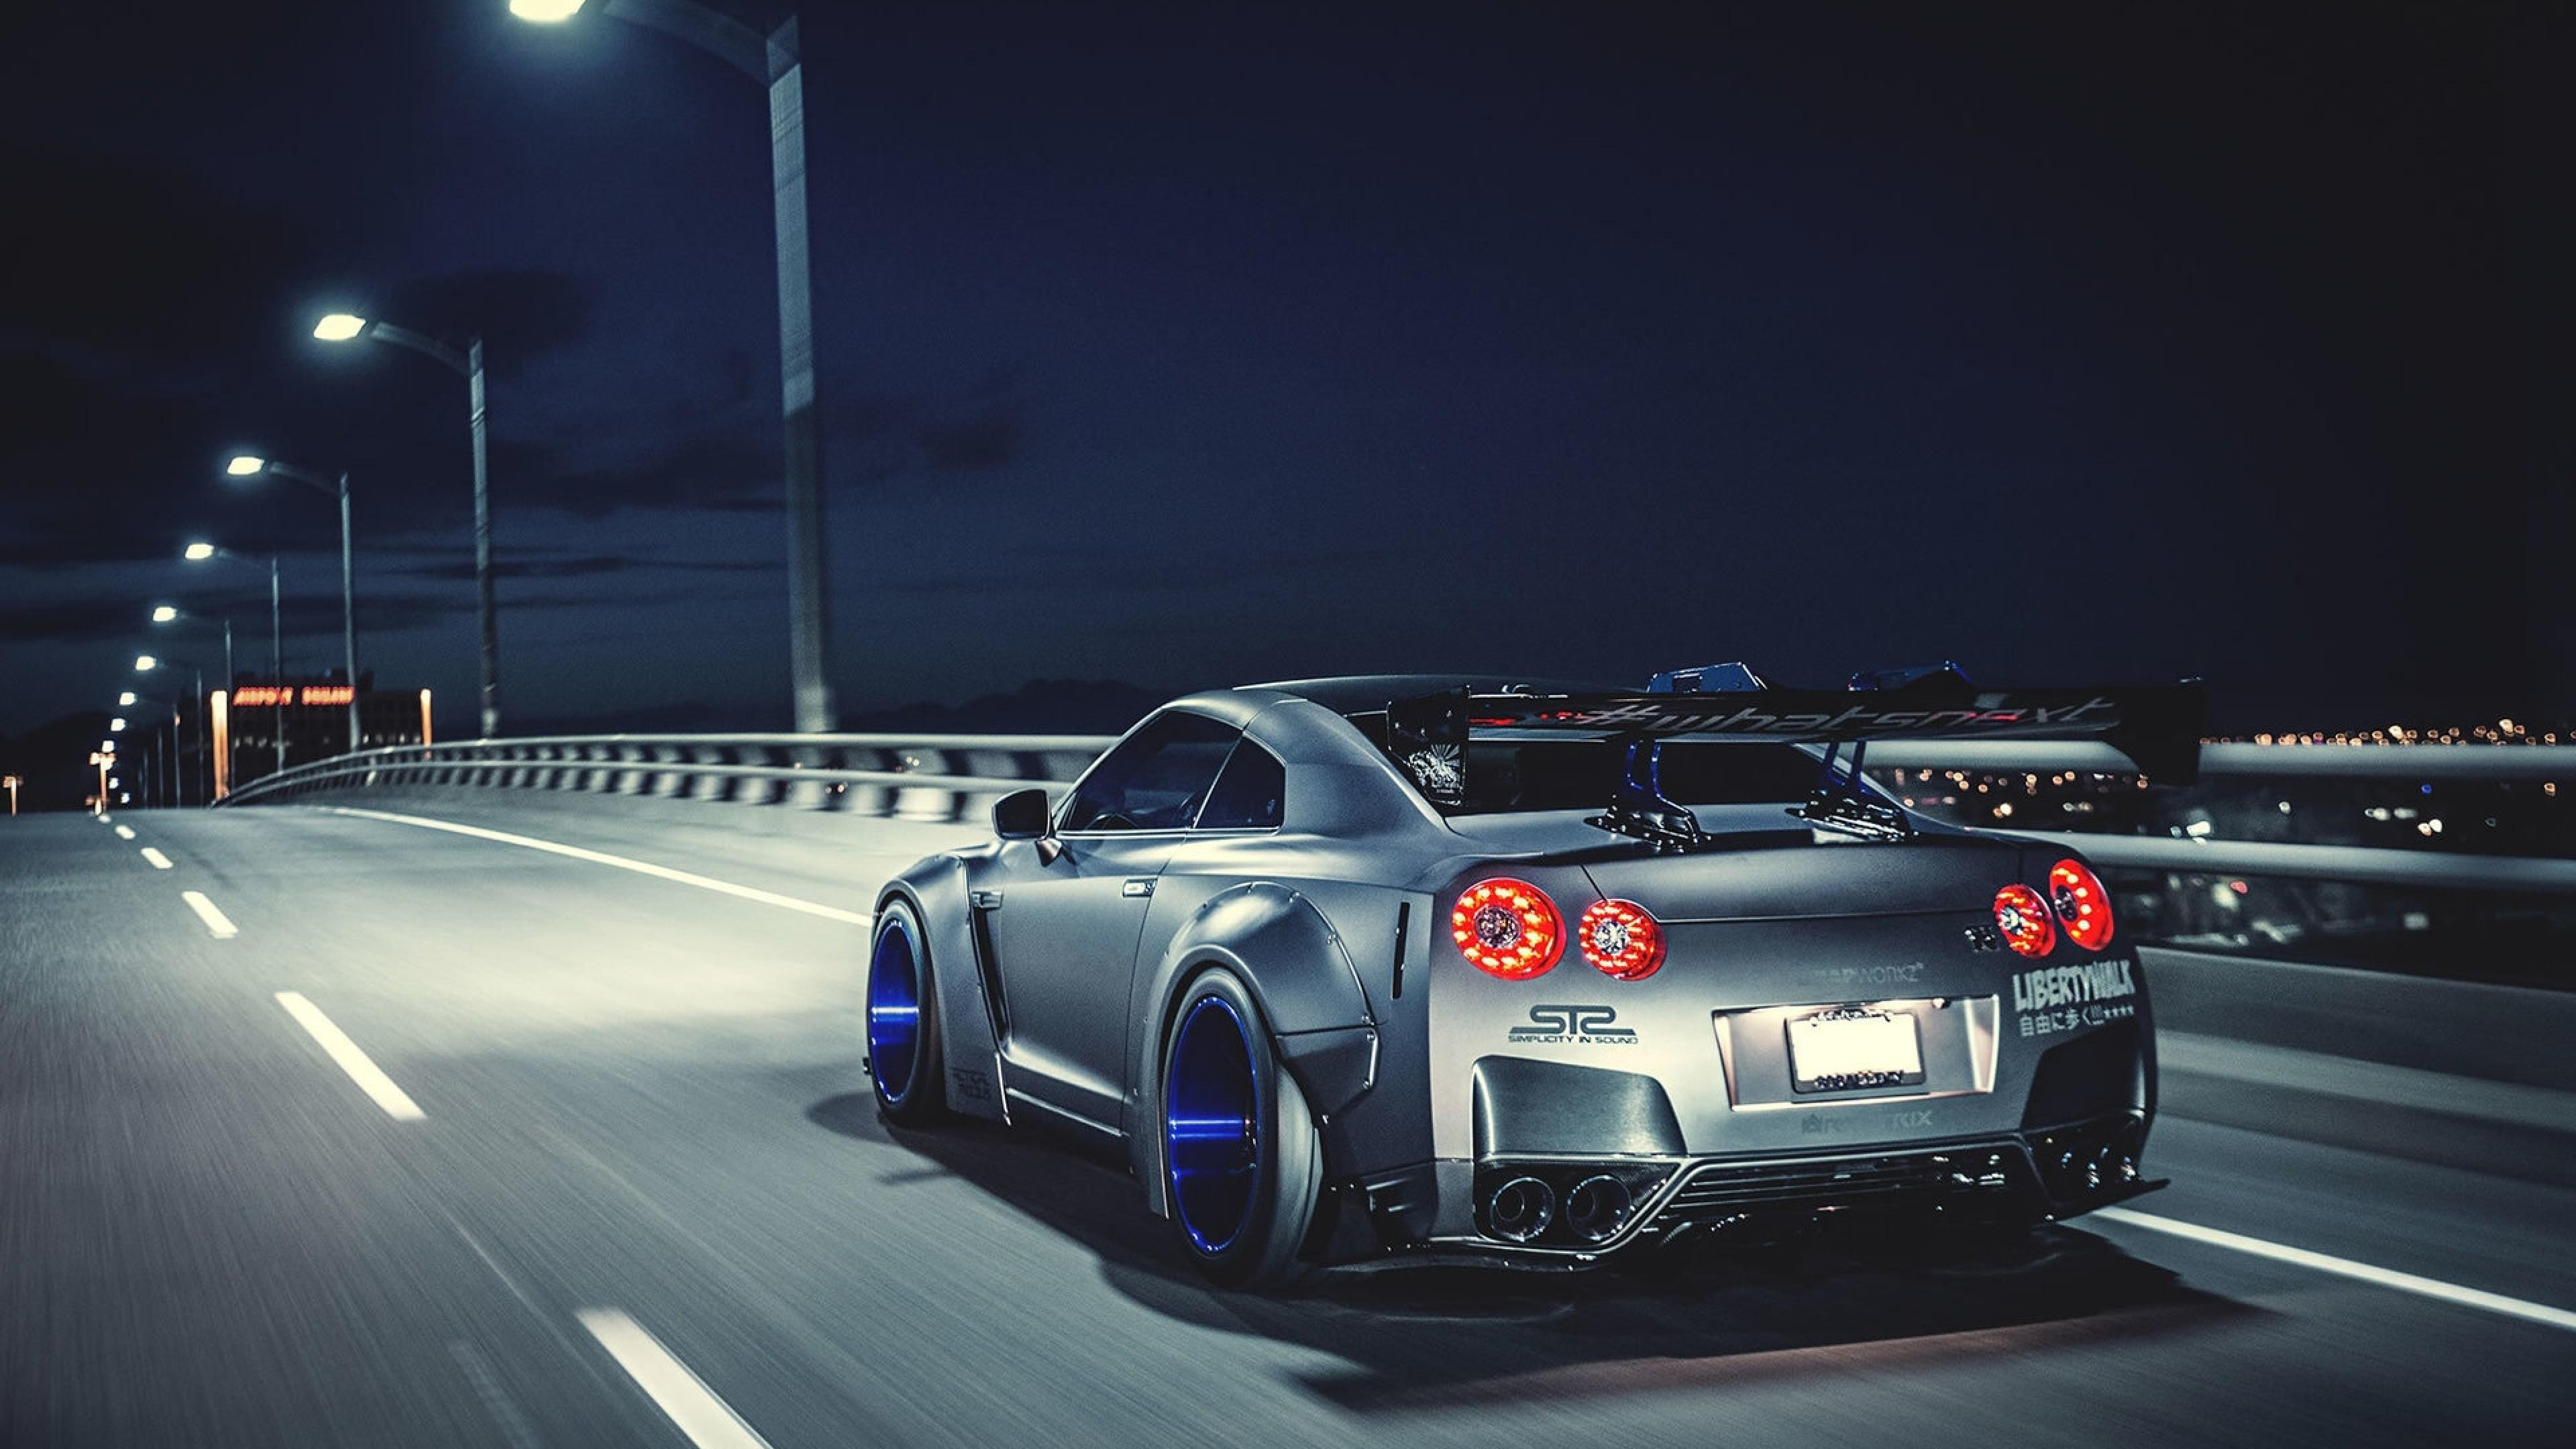 Cool Gtr Wallpapers Top Free Cool Gtr Backgrounds